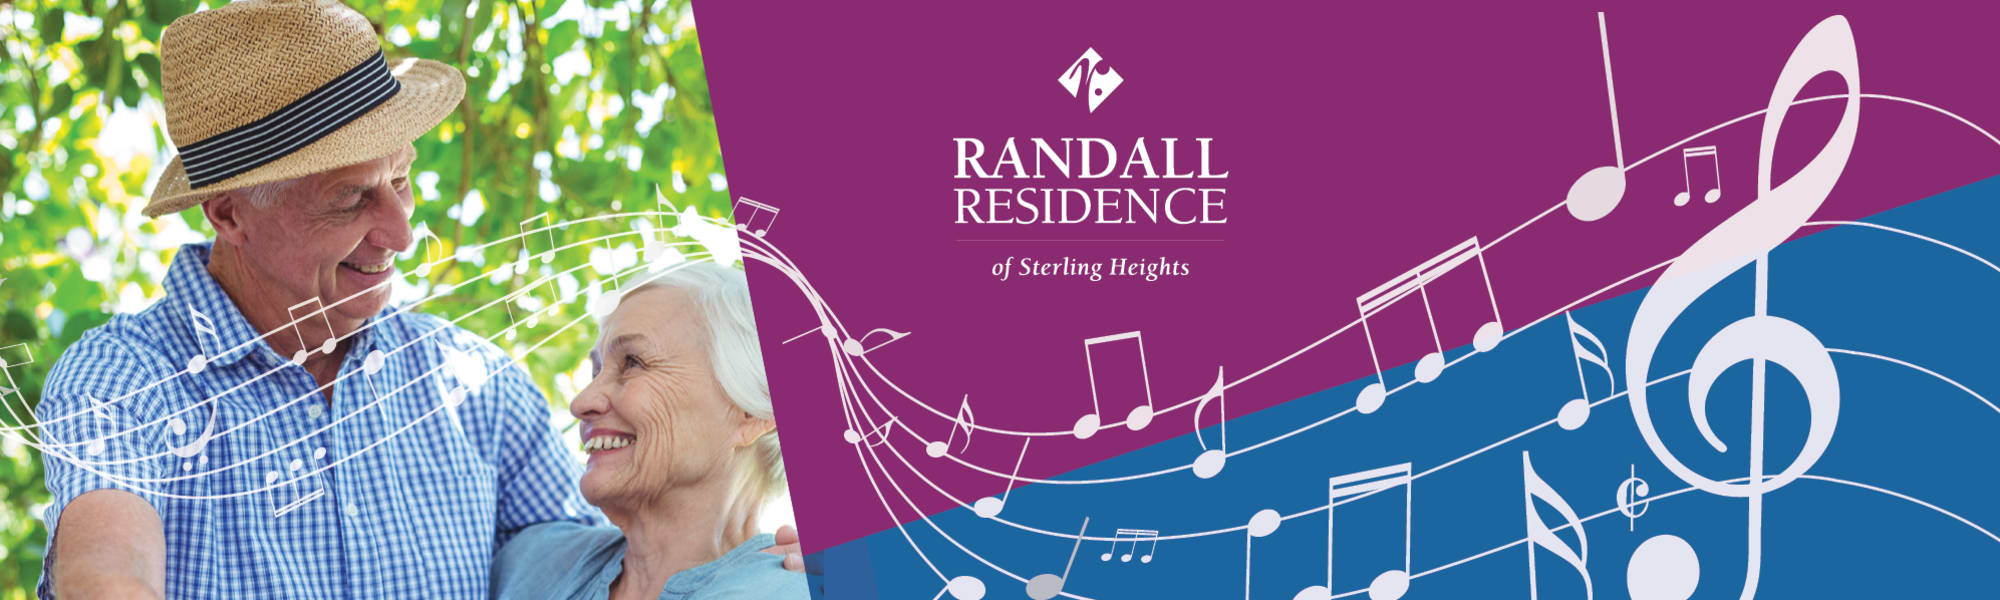 Events at Randall Residence of Sterling Heights in Sterling Heights, Michigan